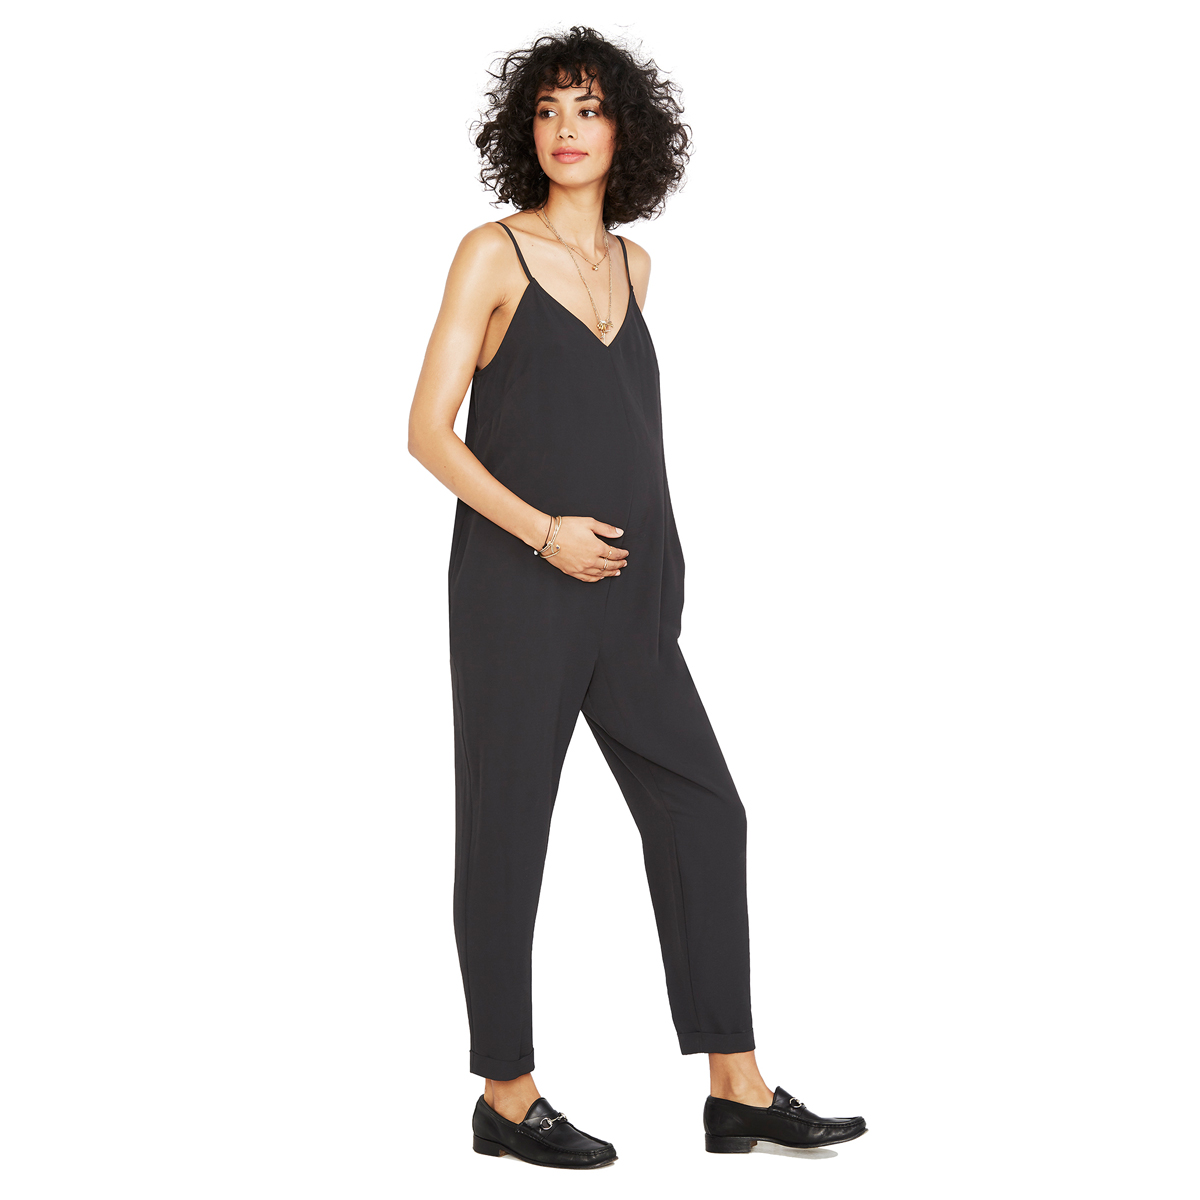 Hatch Collection Georgie Sleeveless Jumper in black on pregnant woman